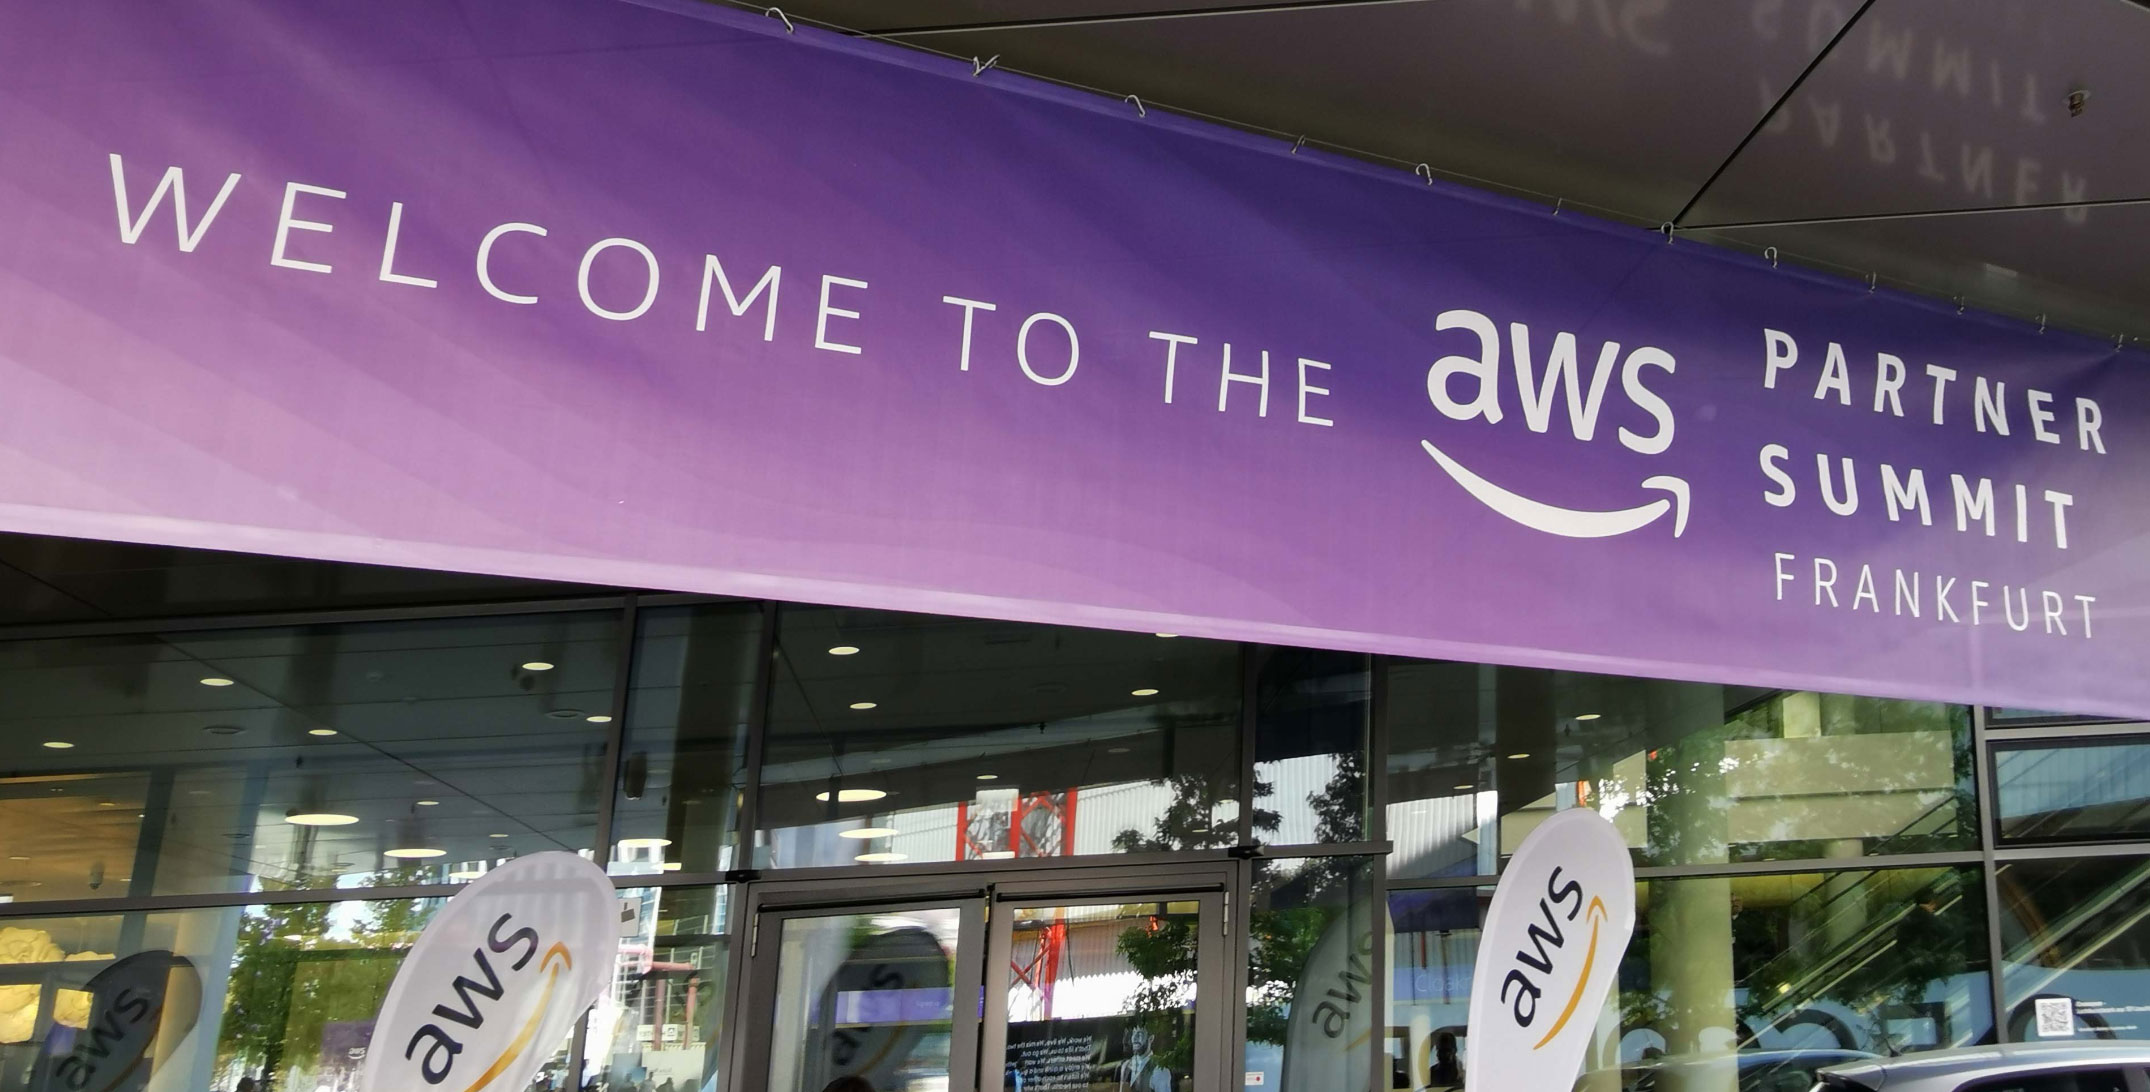 AWS Partner Summit in Frankfurt - AWS Summit Frankfut 2019 - Amazon Web Services Conference - AWS Logo